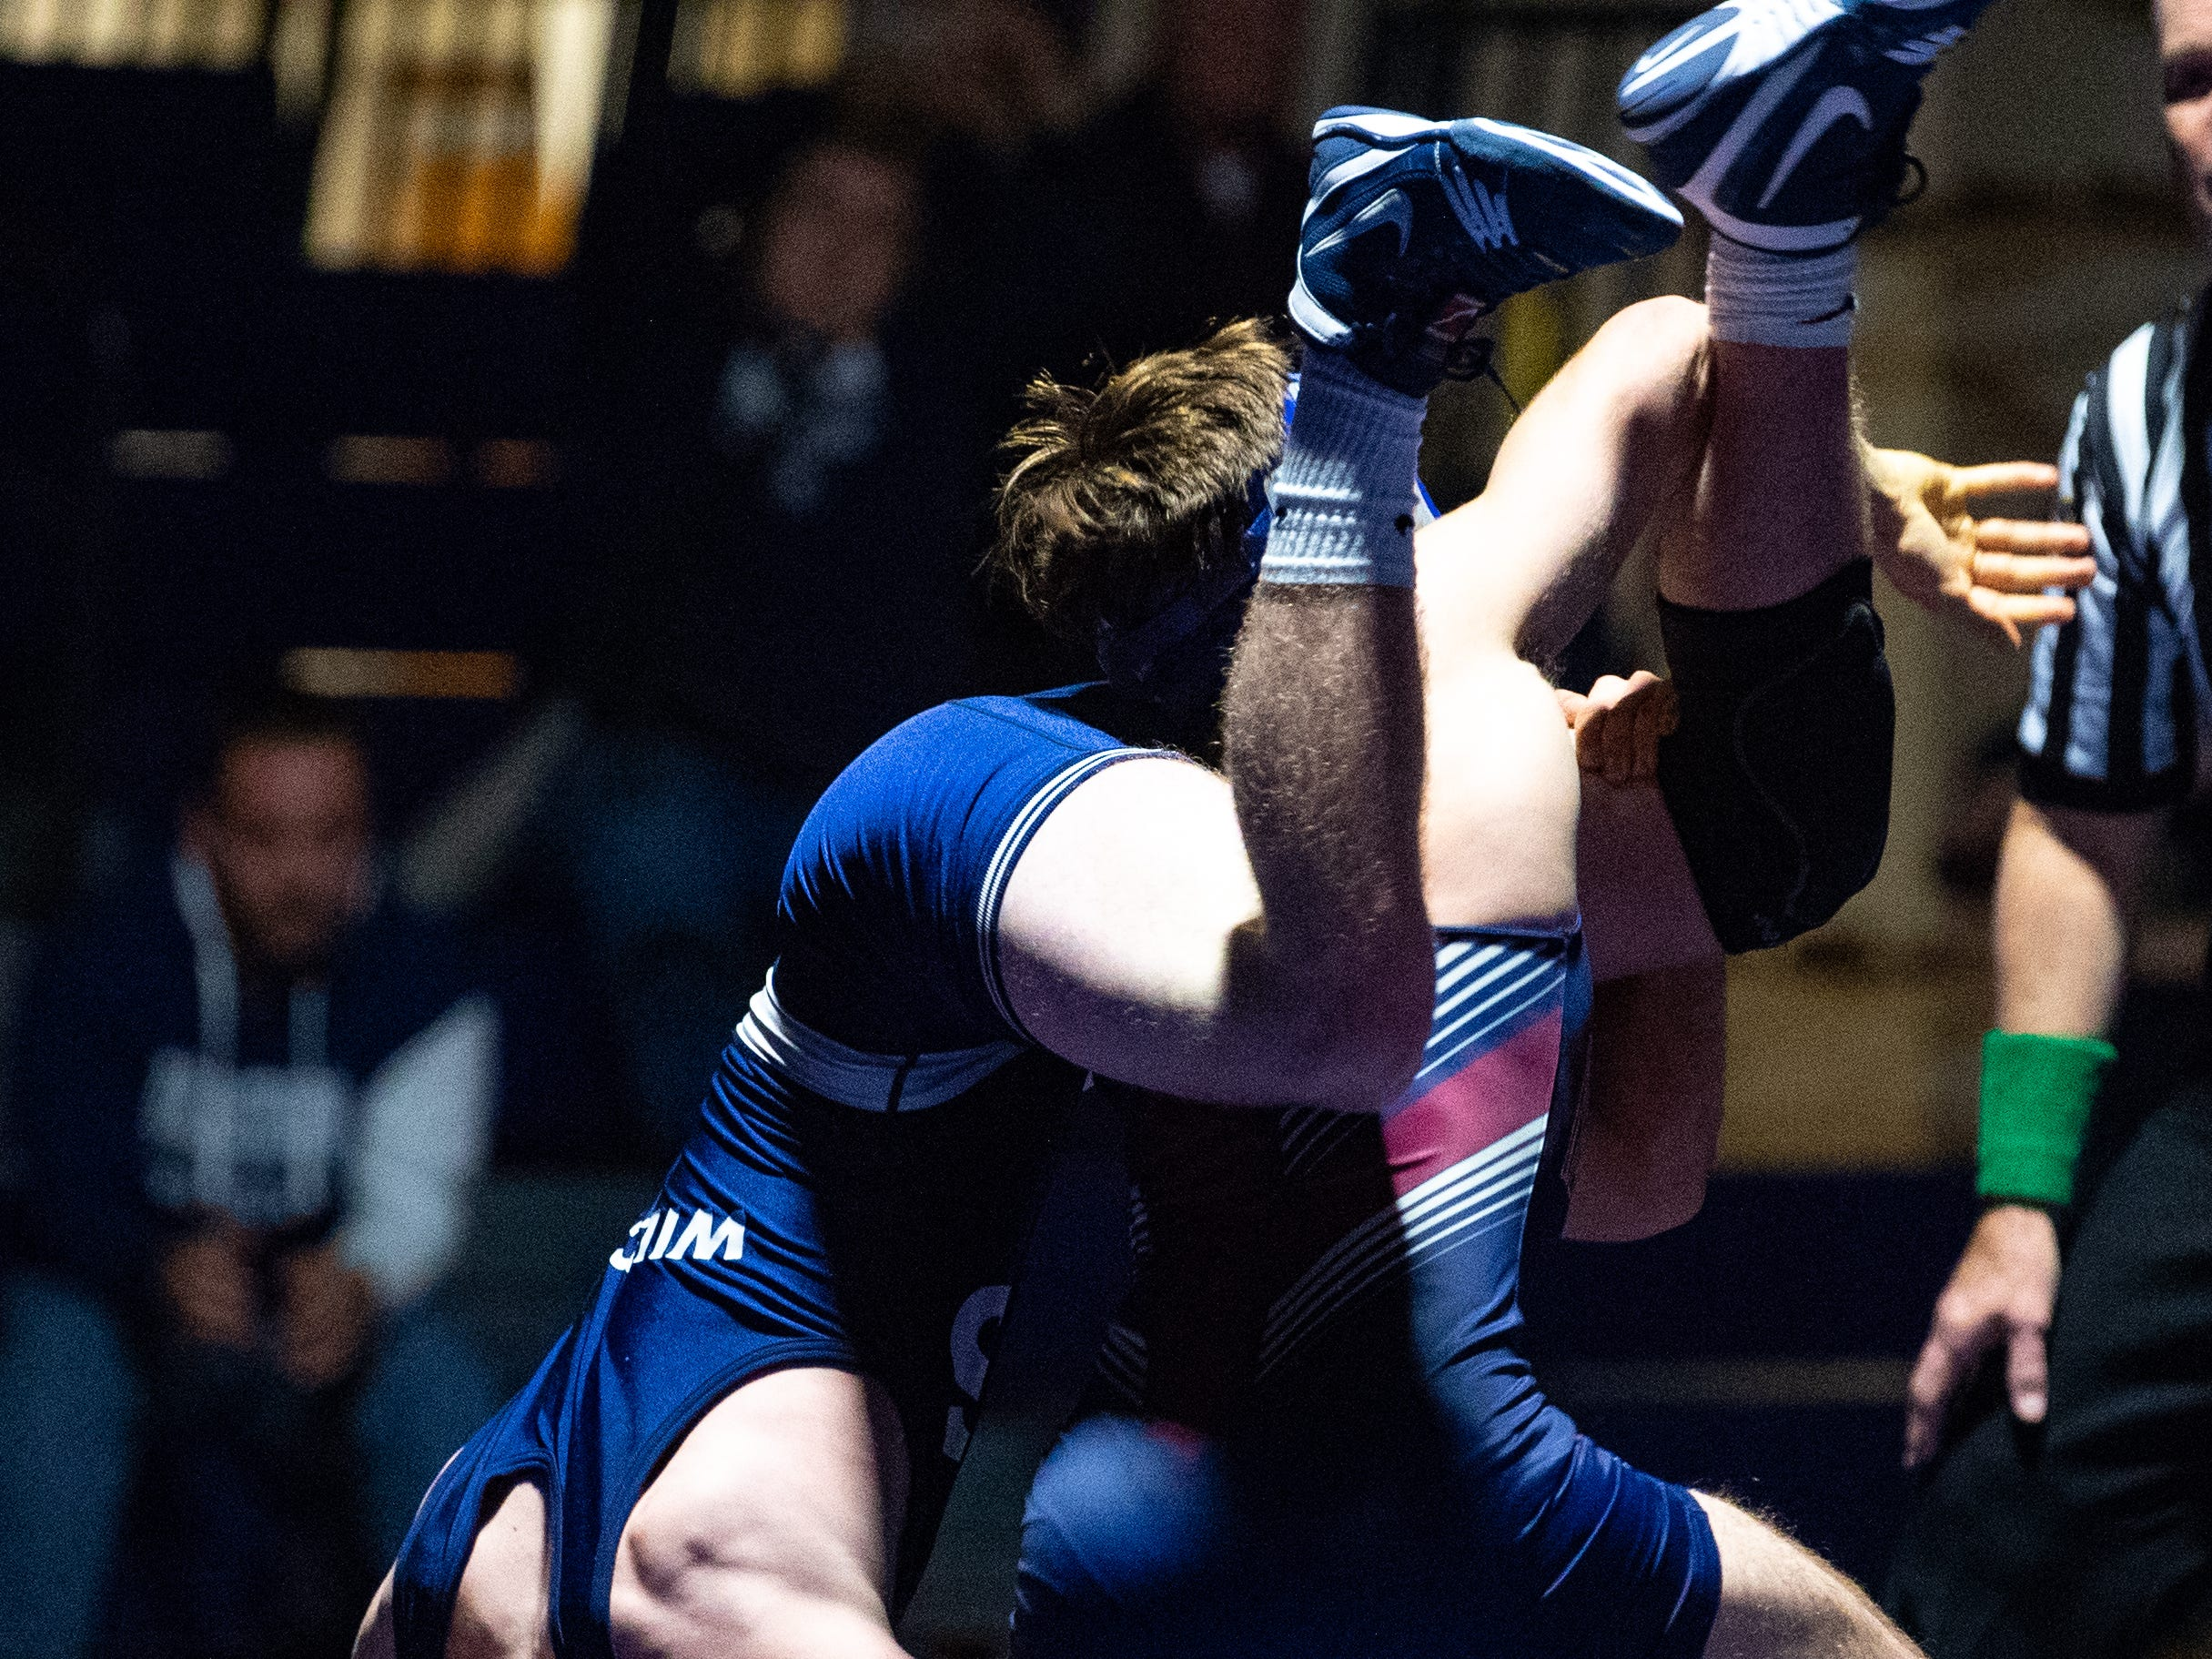 New Oxford's Brennan Romanoff puts down Dallastown's Sam Druck during the YAIAA Division I wrestling match, December 13, 2018. The Wildcats defeated the Colonials 40-20.